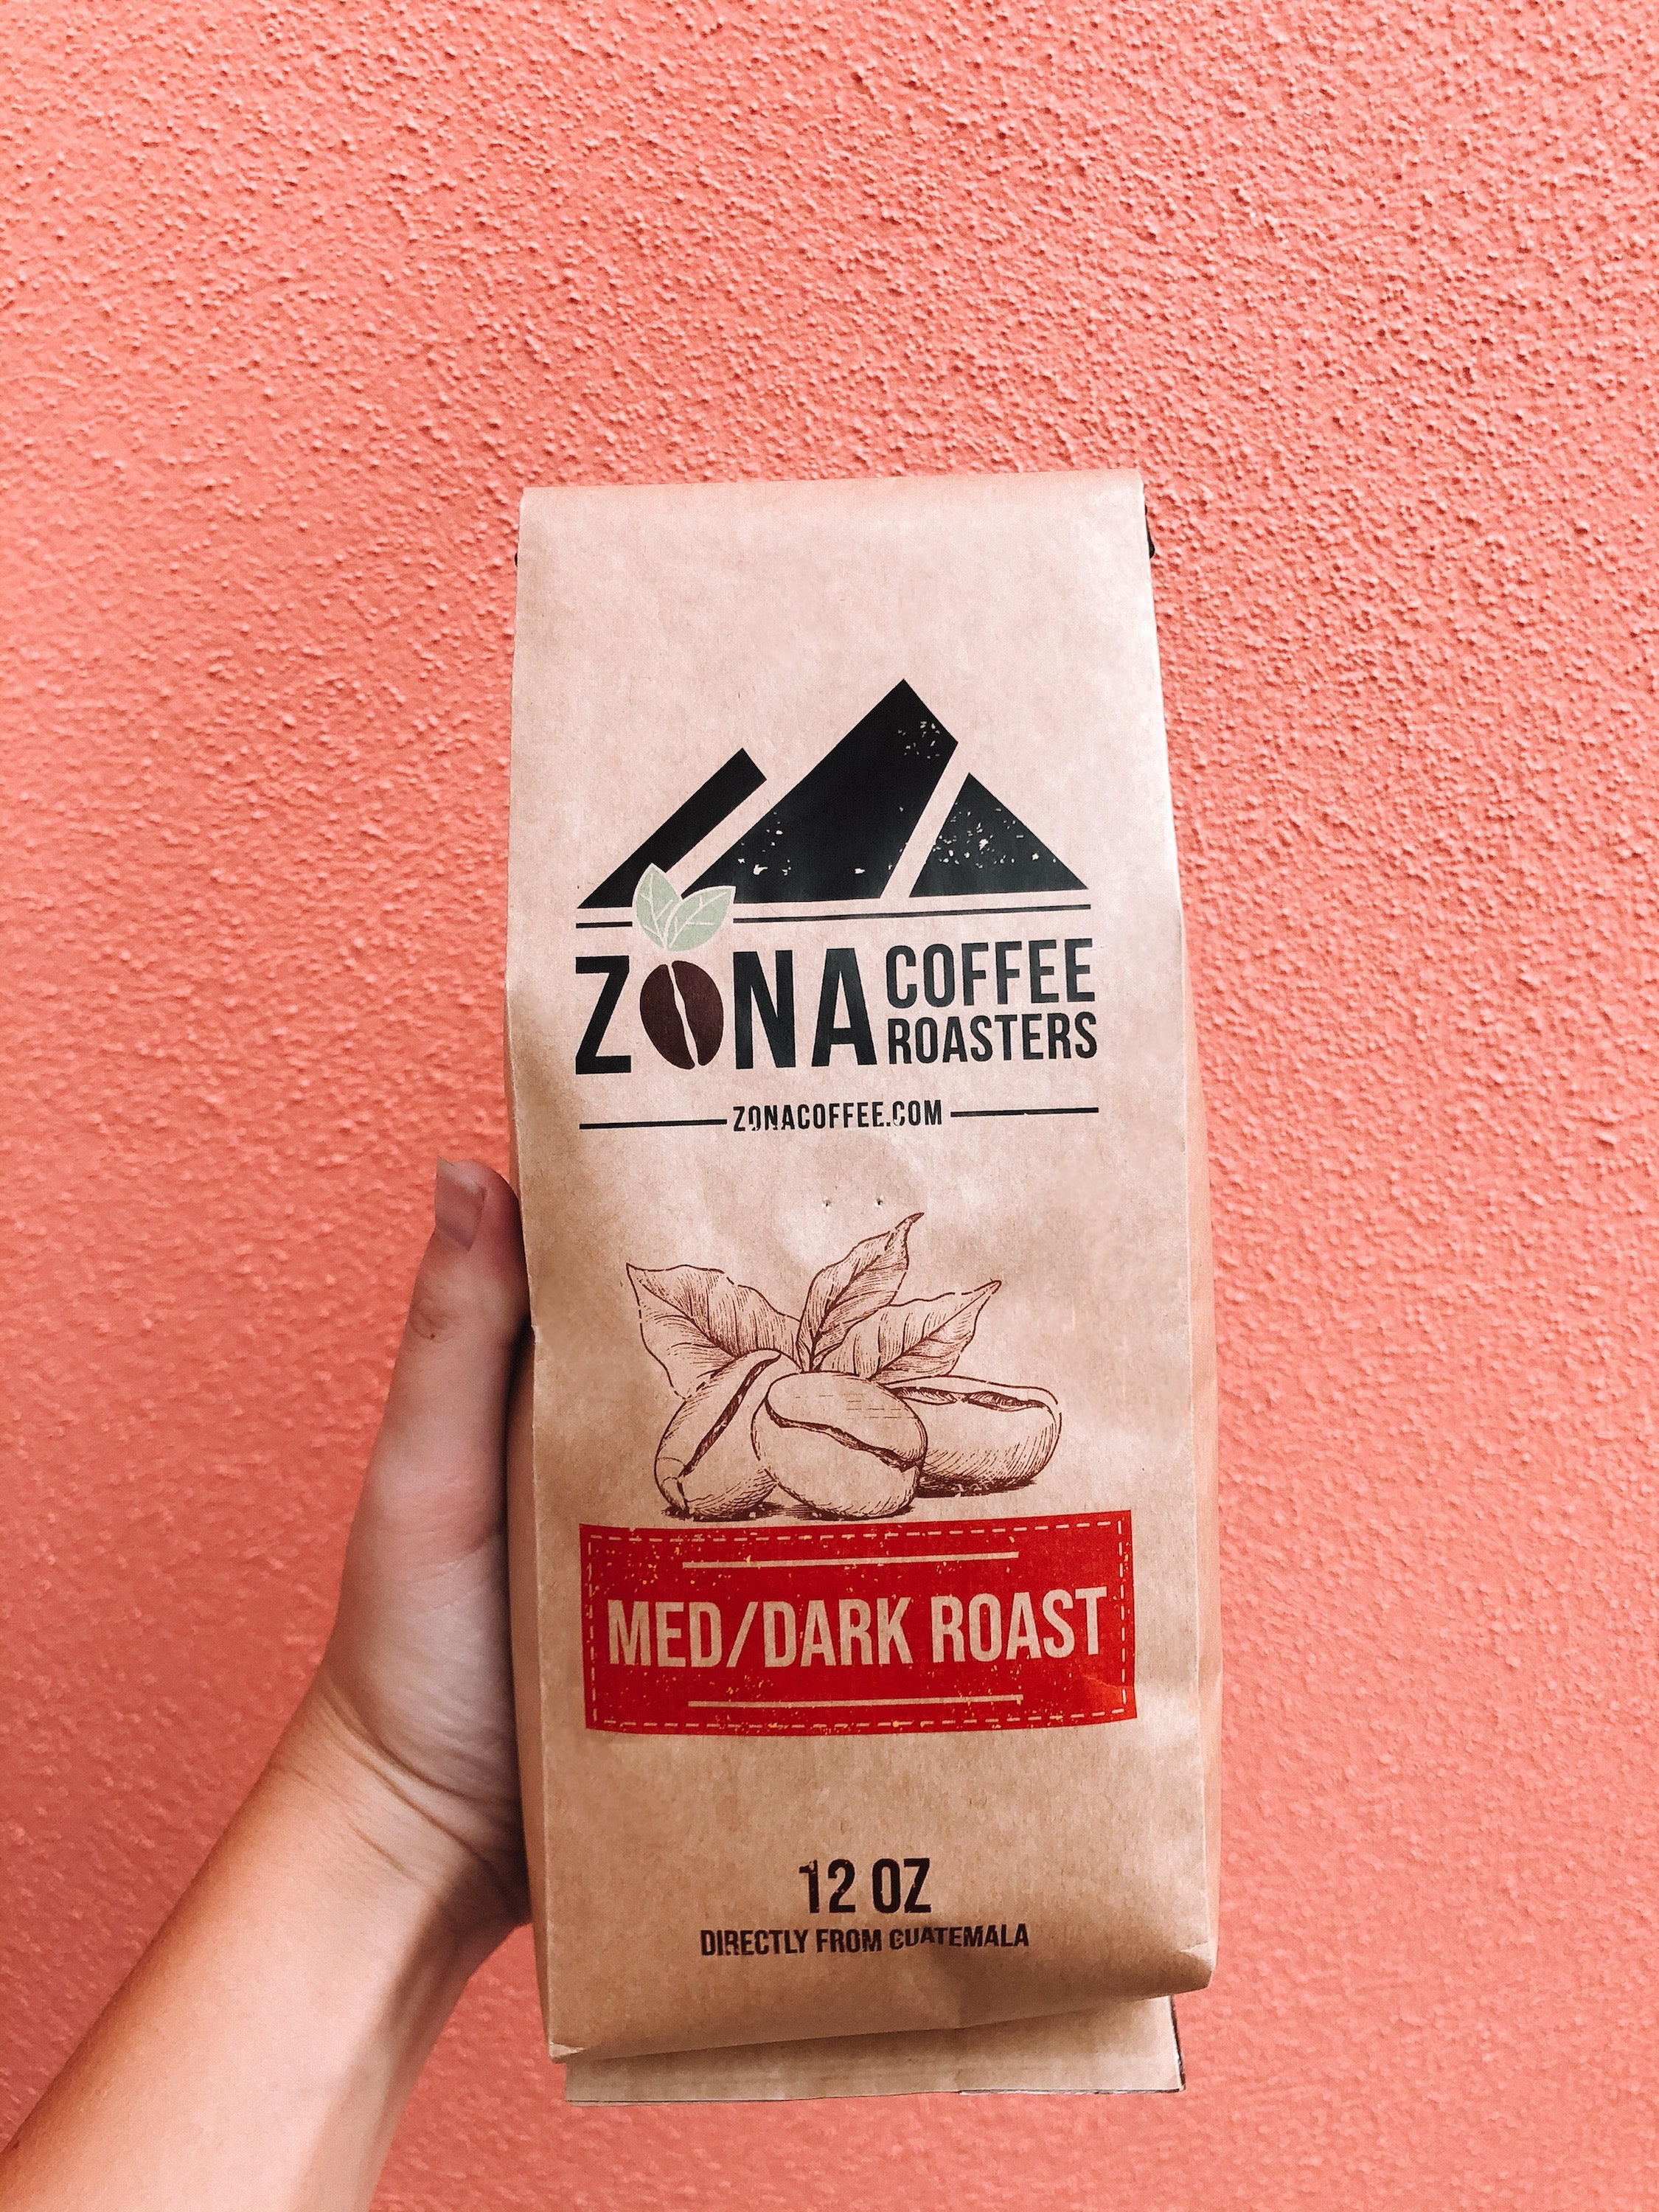 Medium/Dark Roast